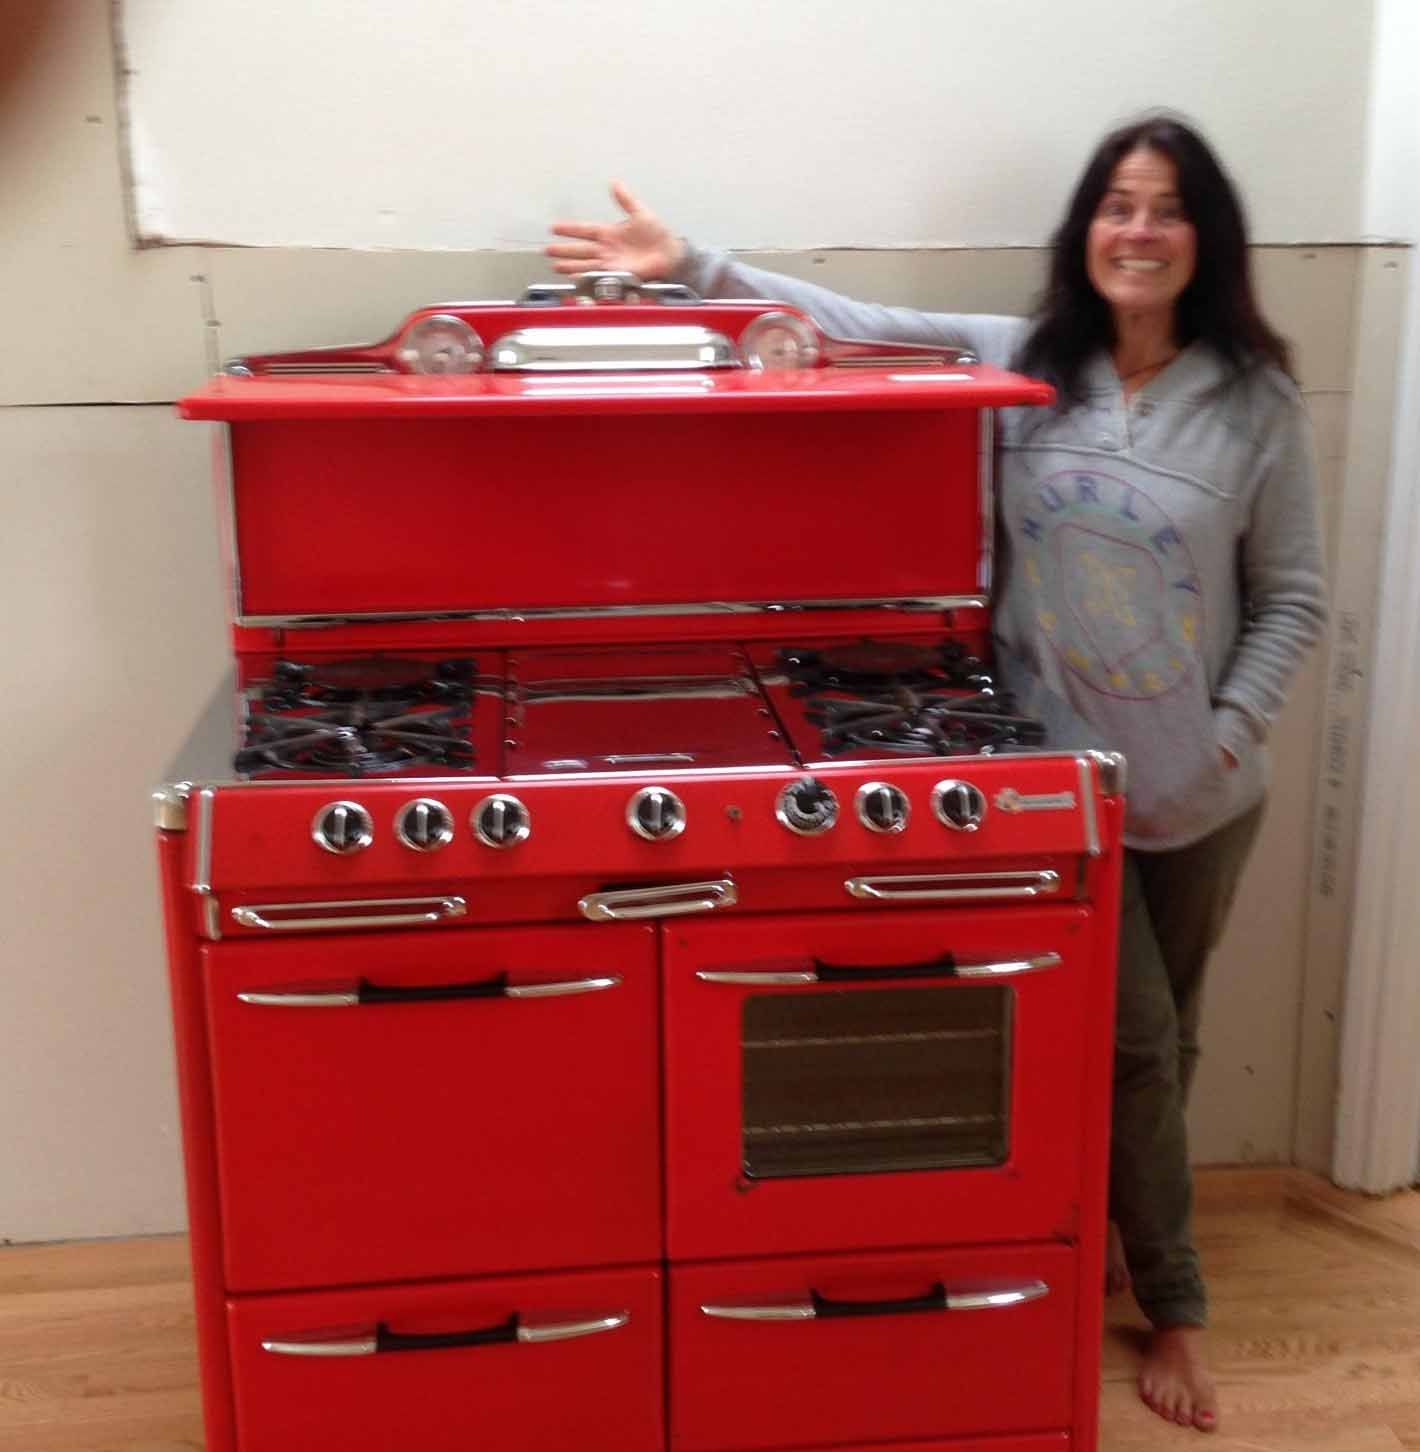 Kitchen Appliances For Sale What To Use Clean Cabinets Sink Stove Refrigerator Combo Stoves